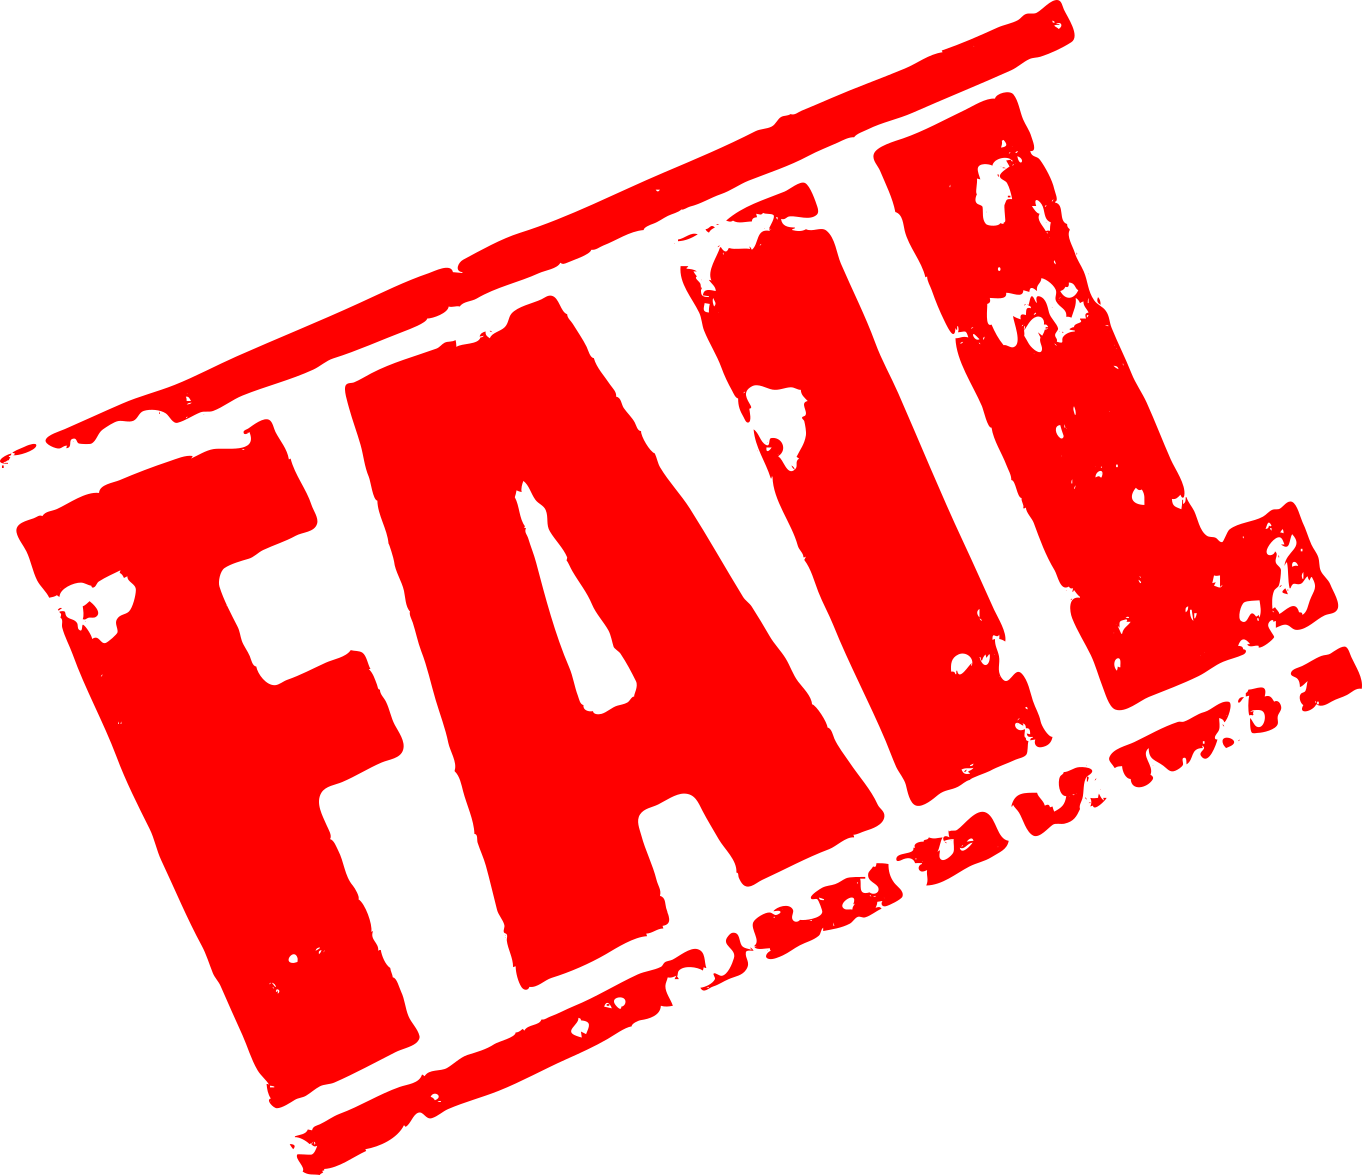 fail-stamp-1.png